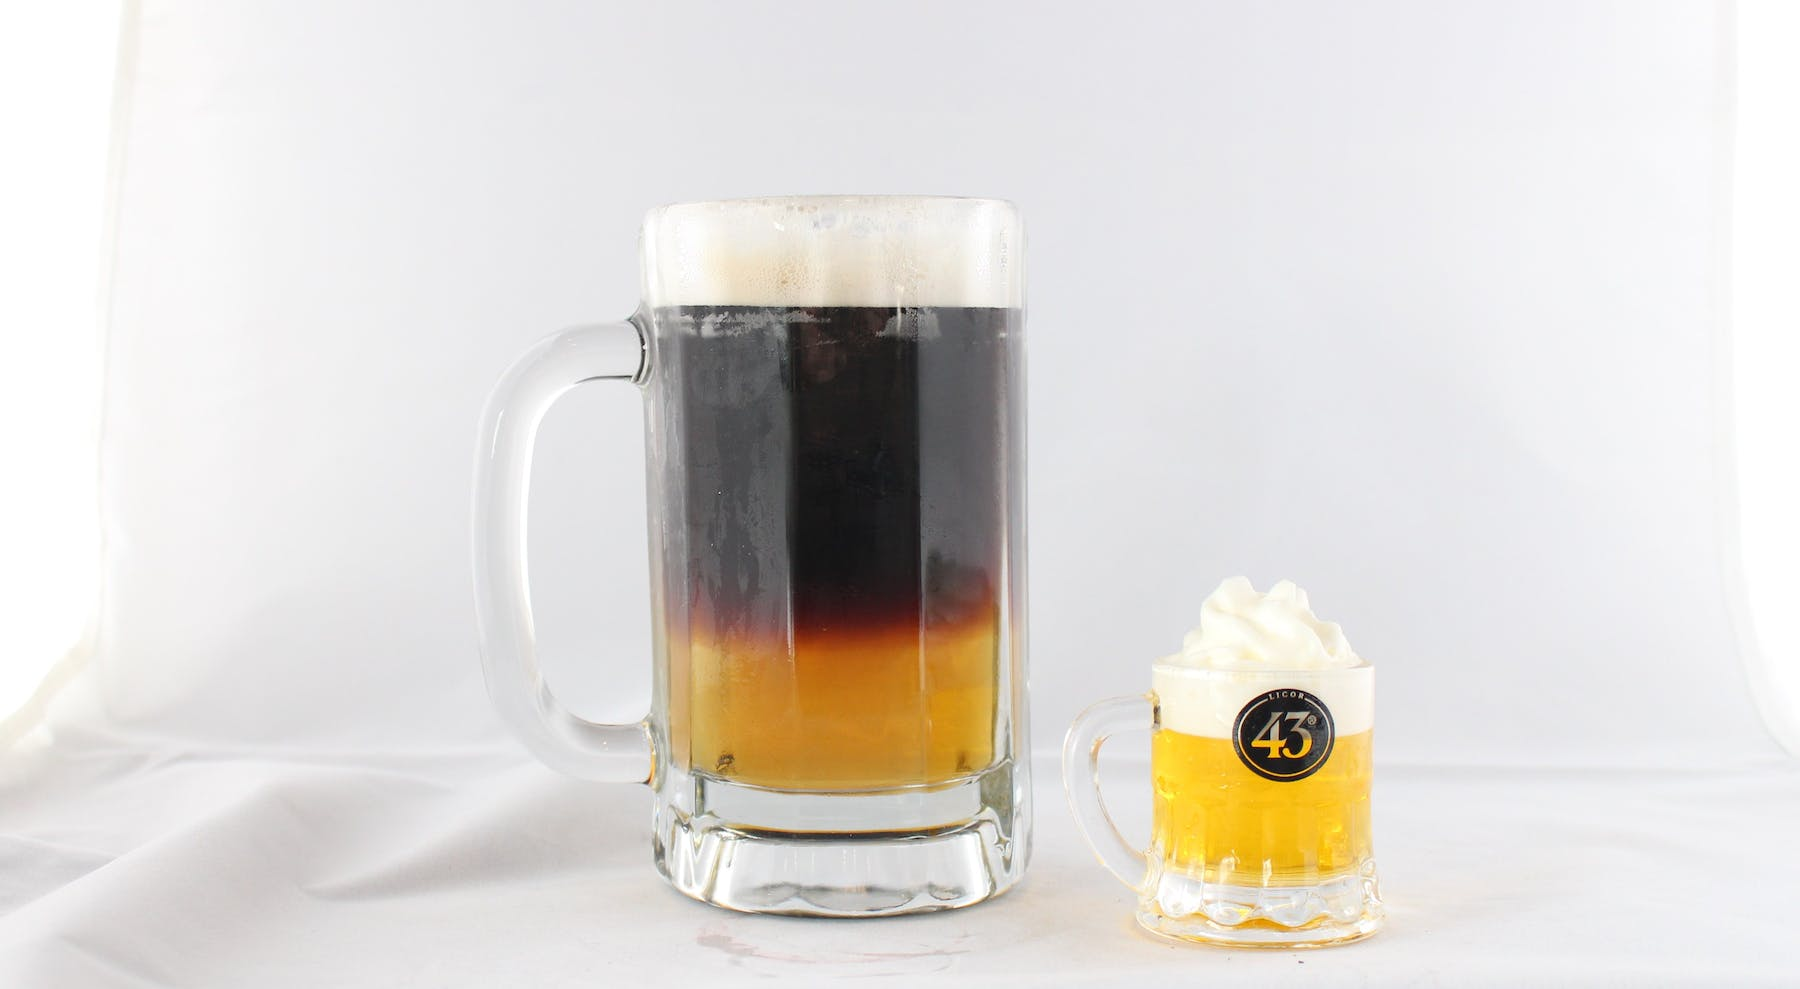 two glass mugs on a table